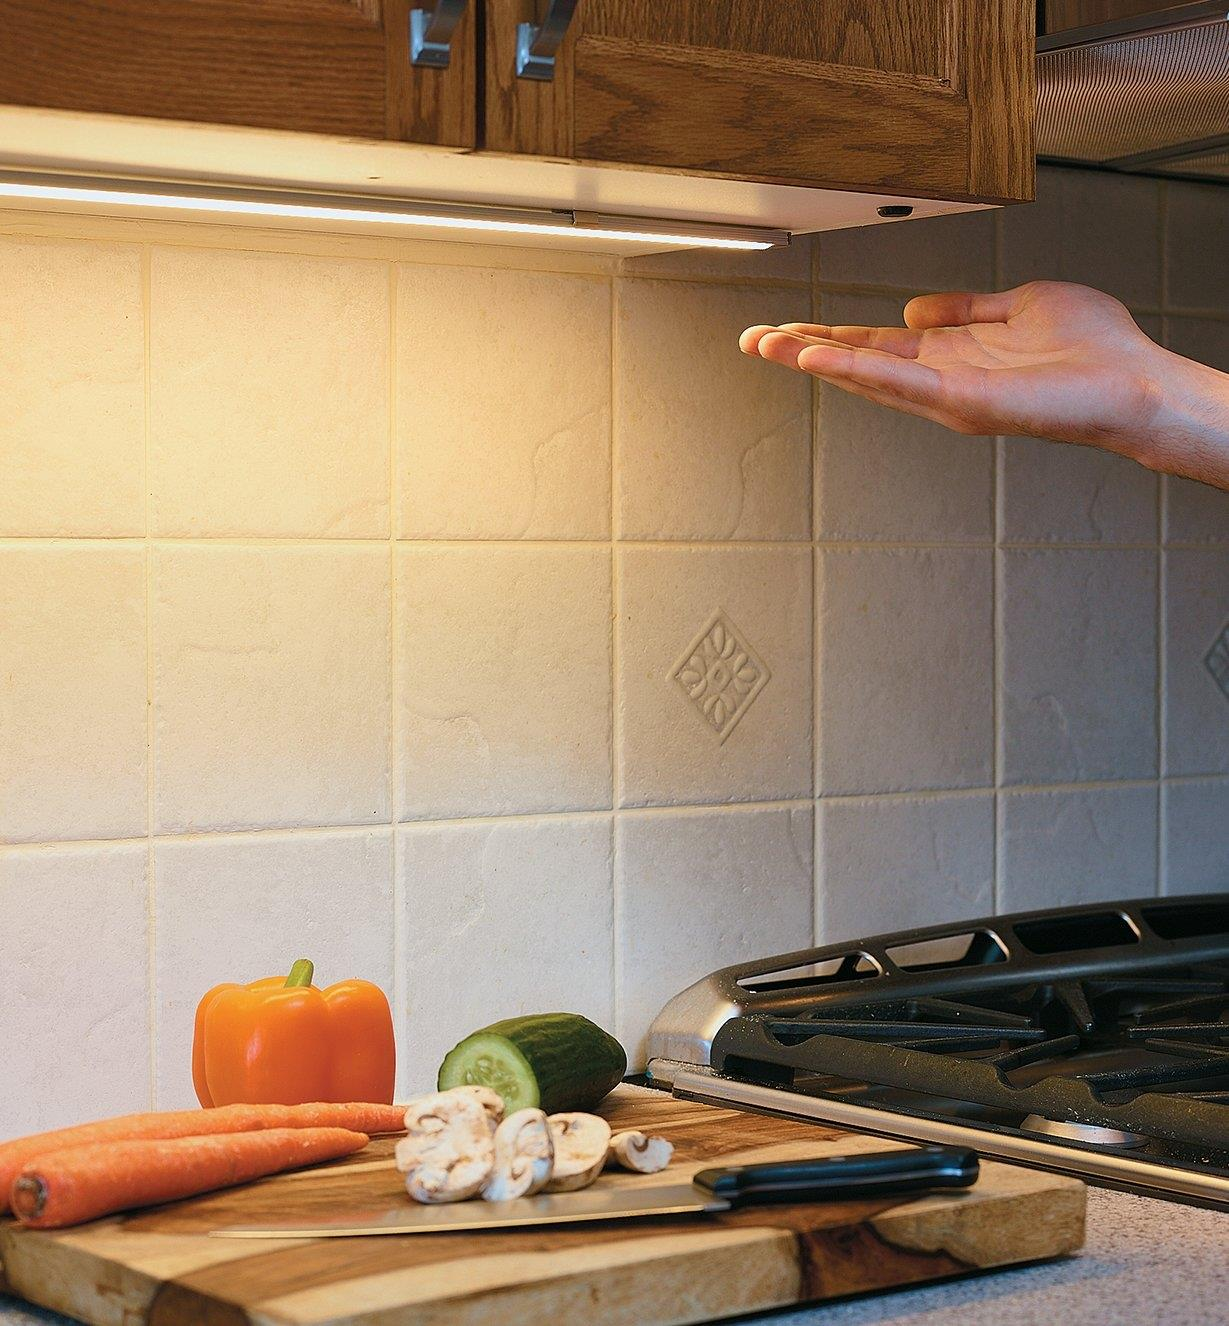 Passing a hand under a Touchless Dimmer Switch to activate LED lighting under kitchen cabinets